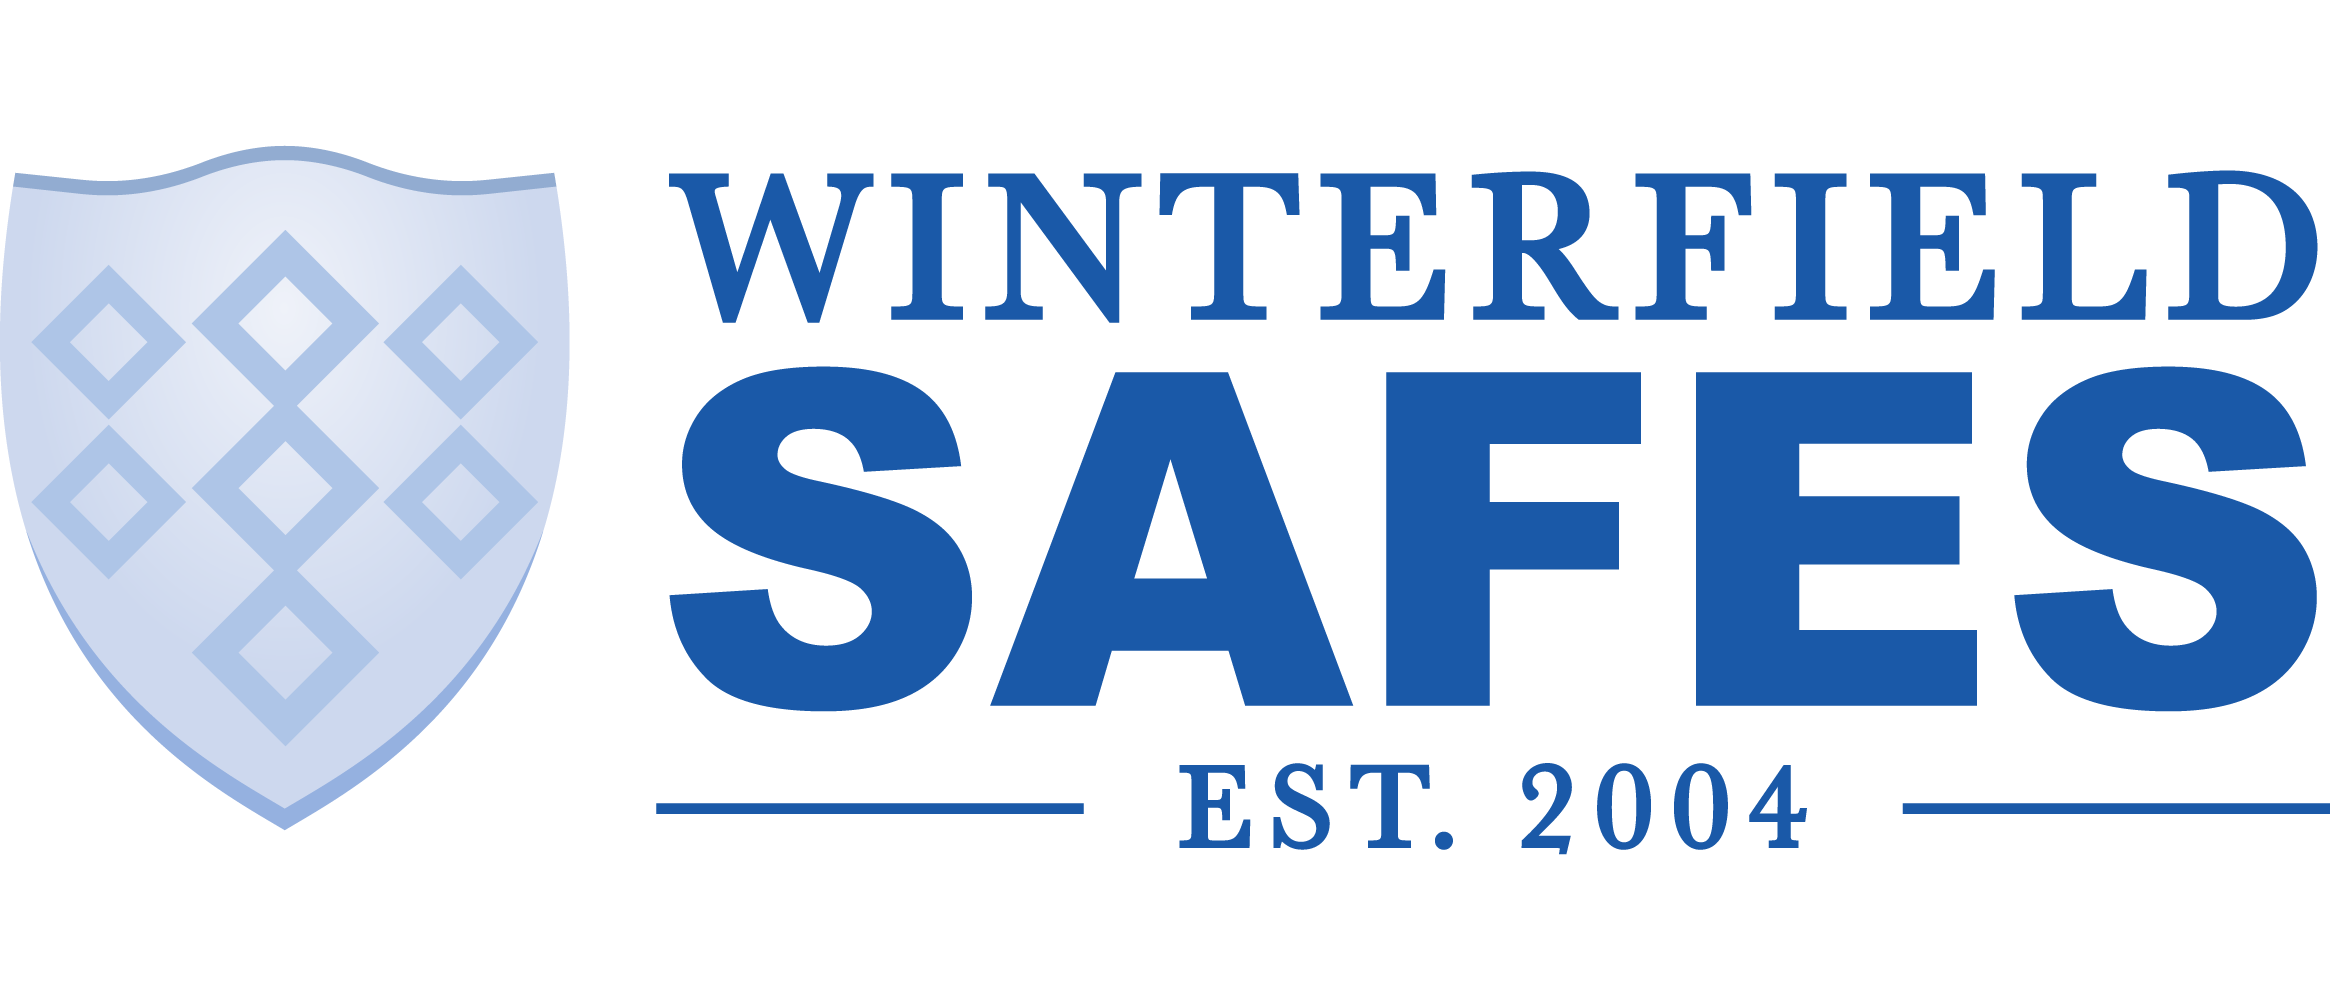 Winterfieldsafes.co.uk